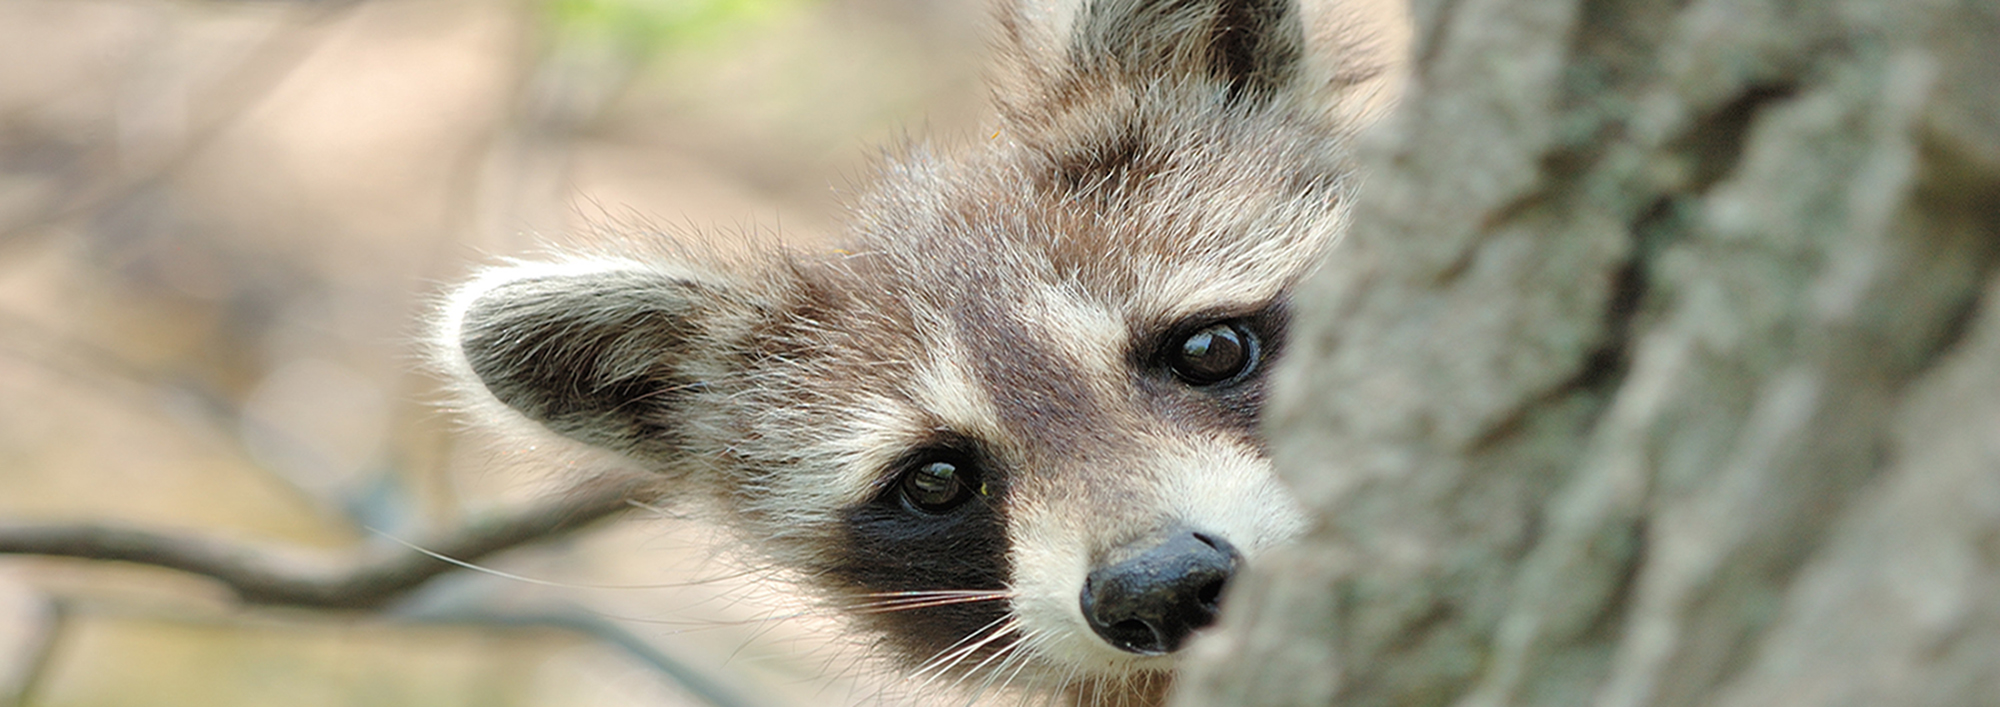 raccoon-header.jpg